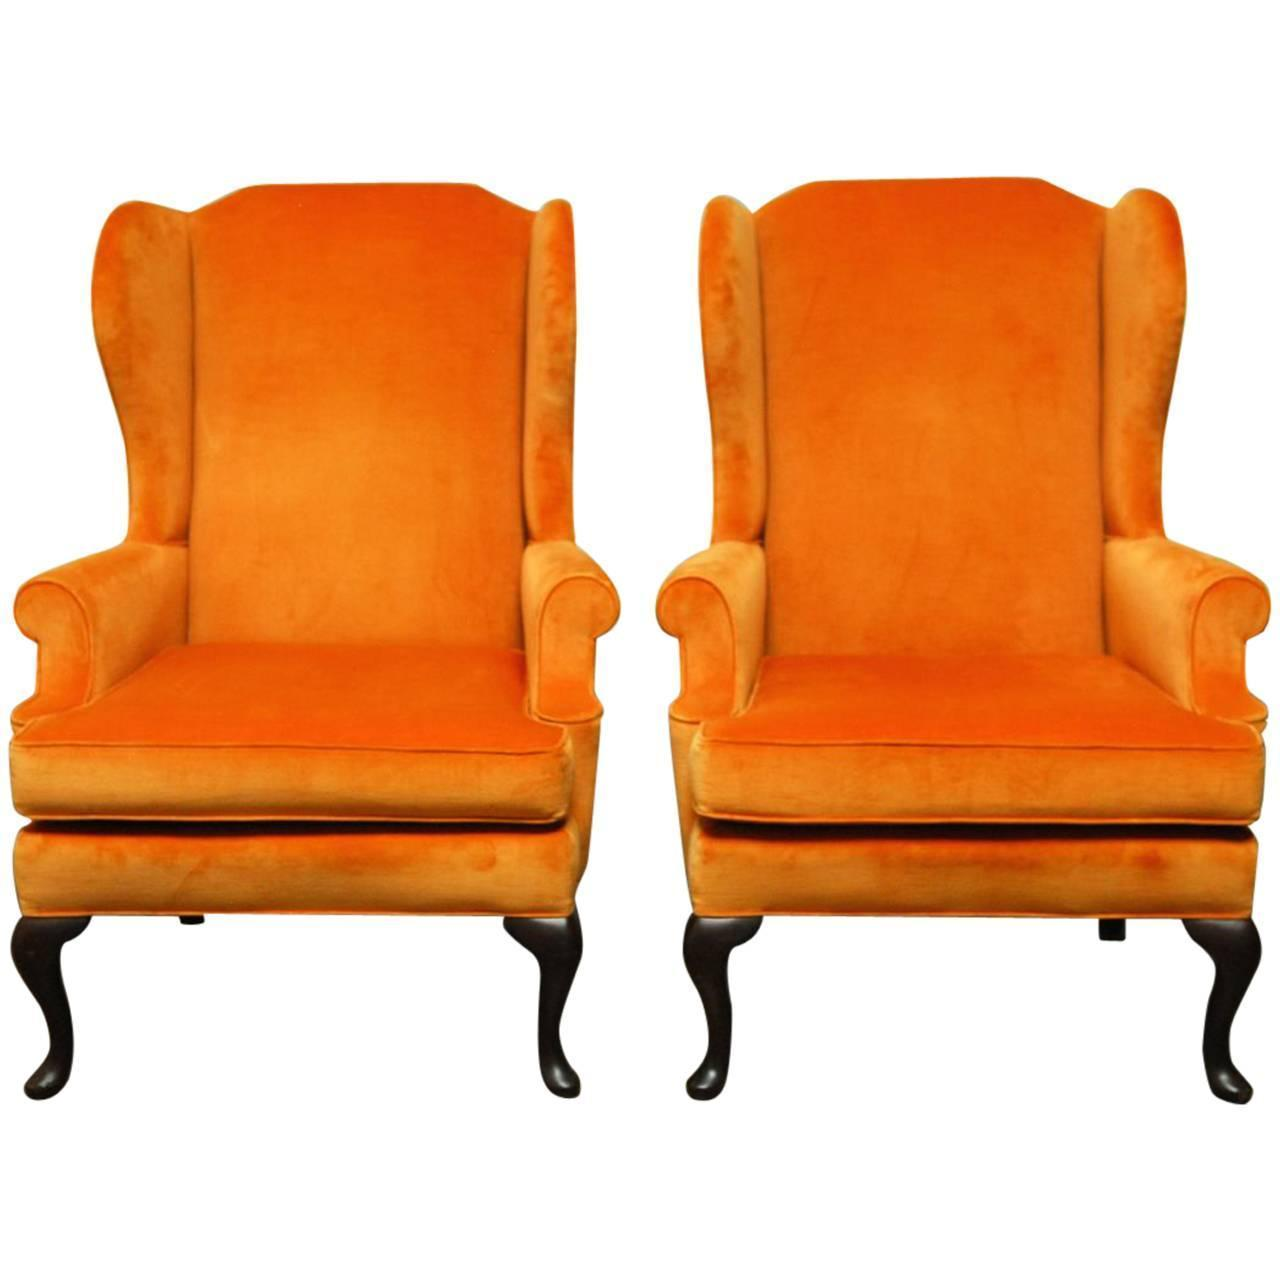 queen ann chairs roman chair leg raises vs hanging anne style orange wingback a pair chairish